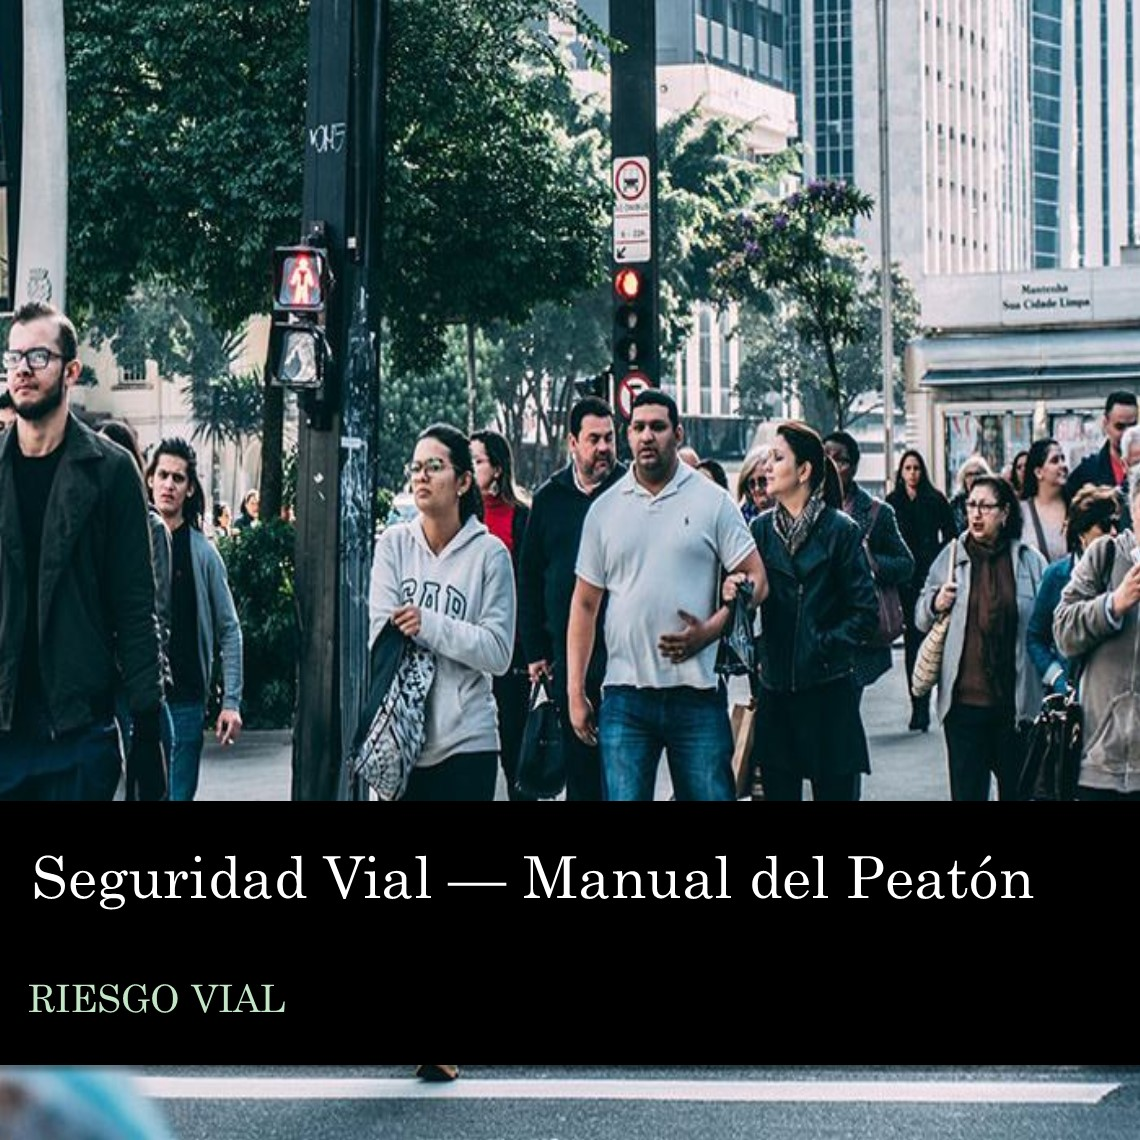 Seguridad Vial - Manual Peatón